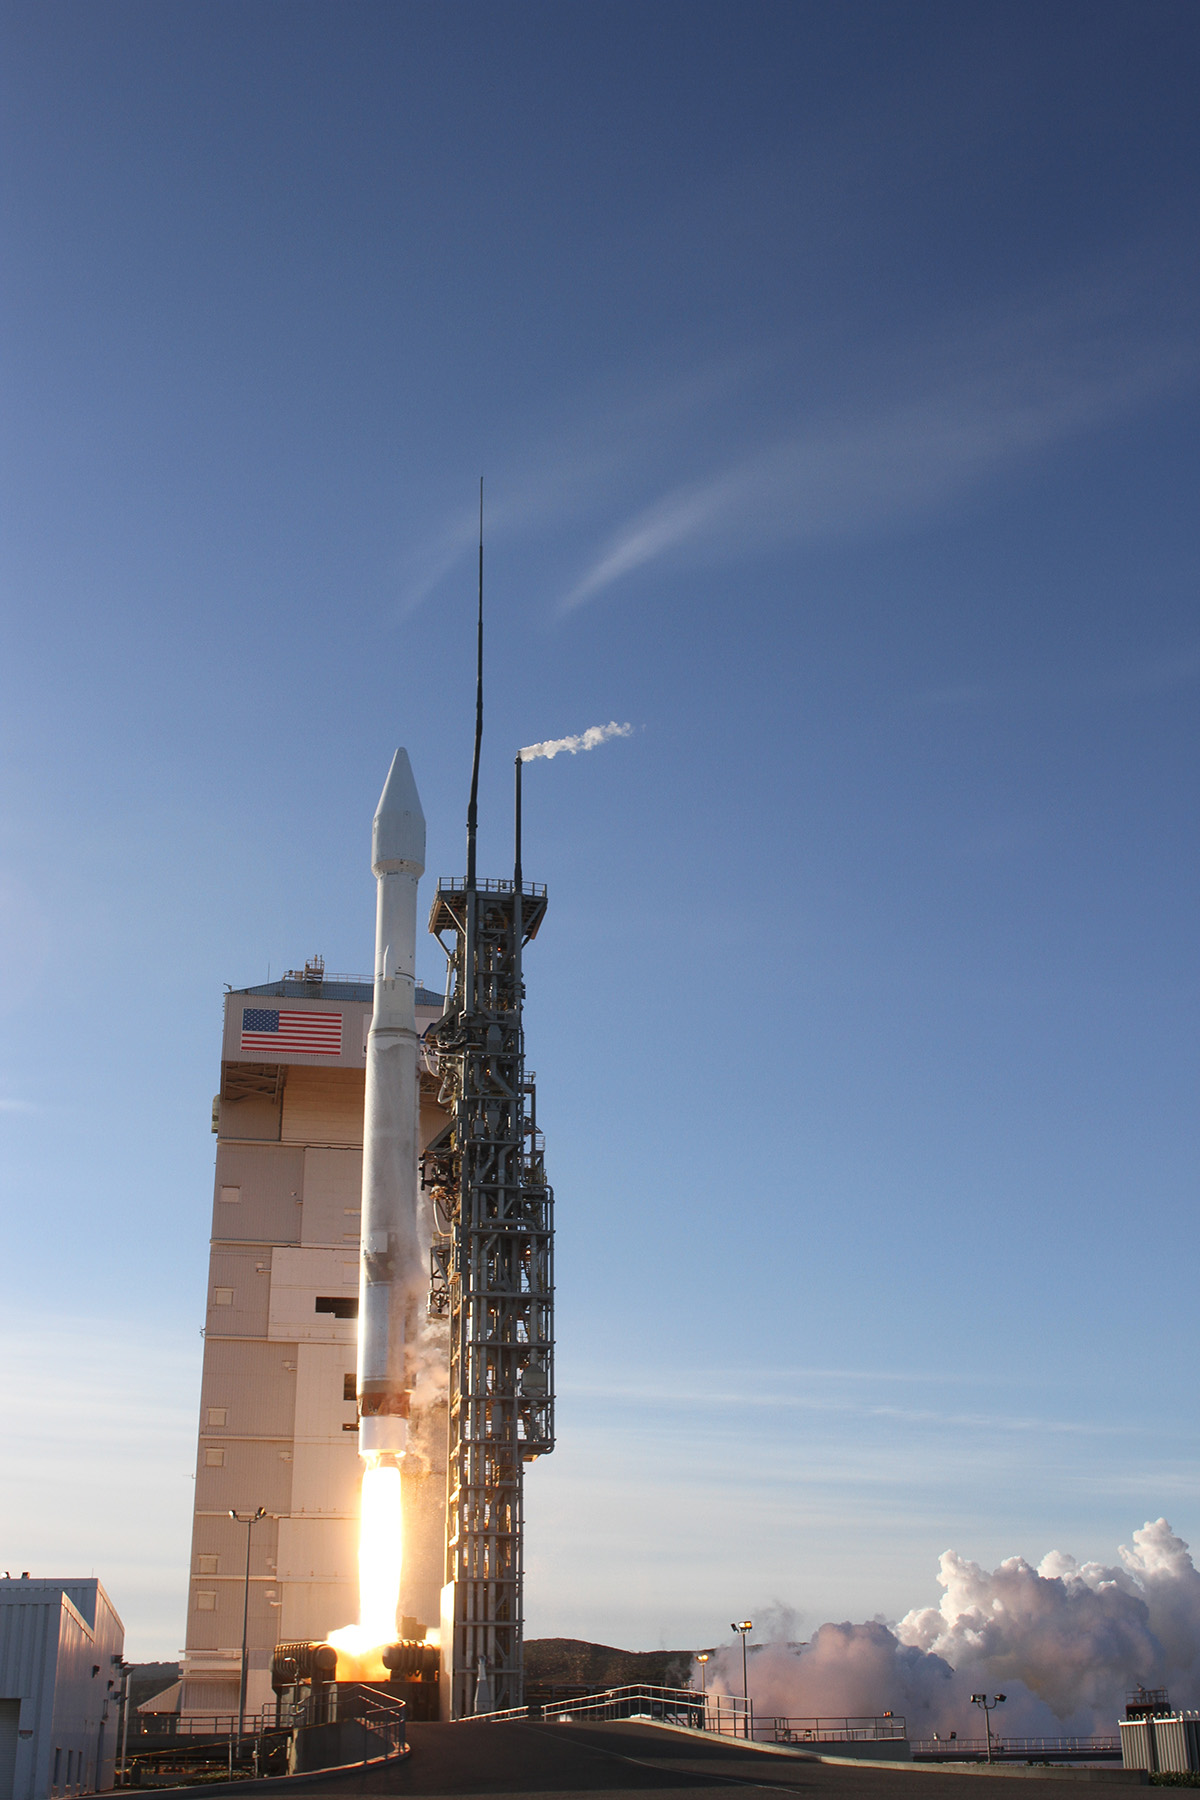 Atlas 5 Rocket Launches DMSP-19 Weather Satellite